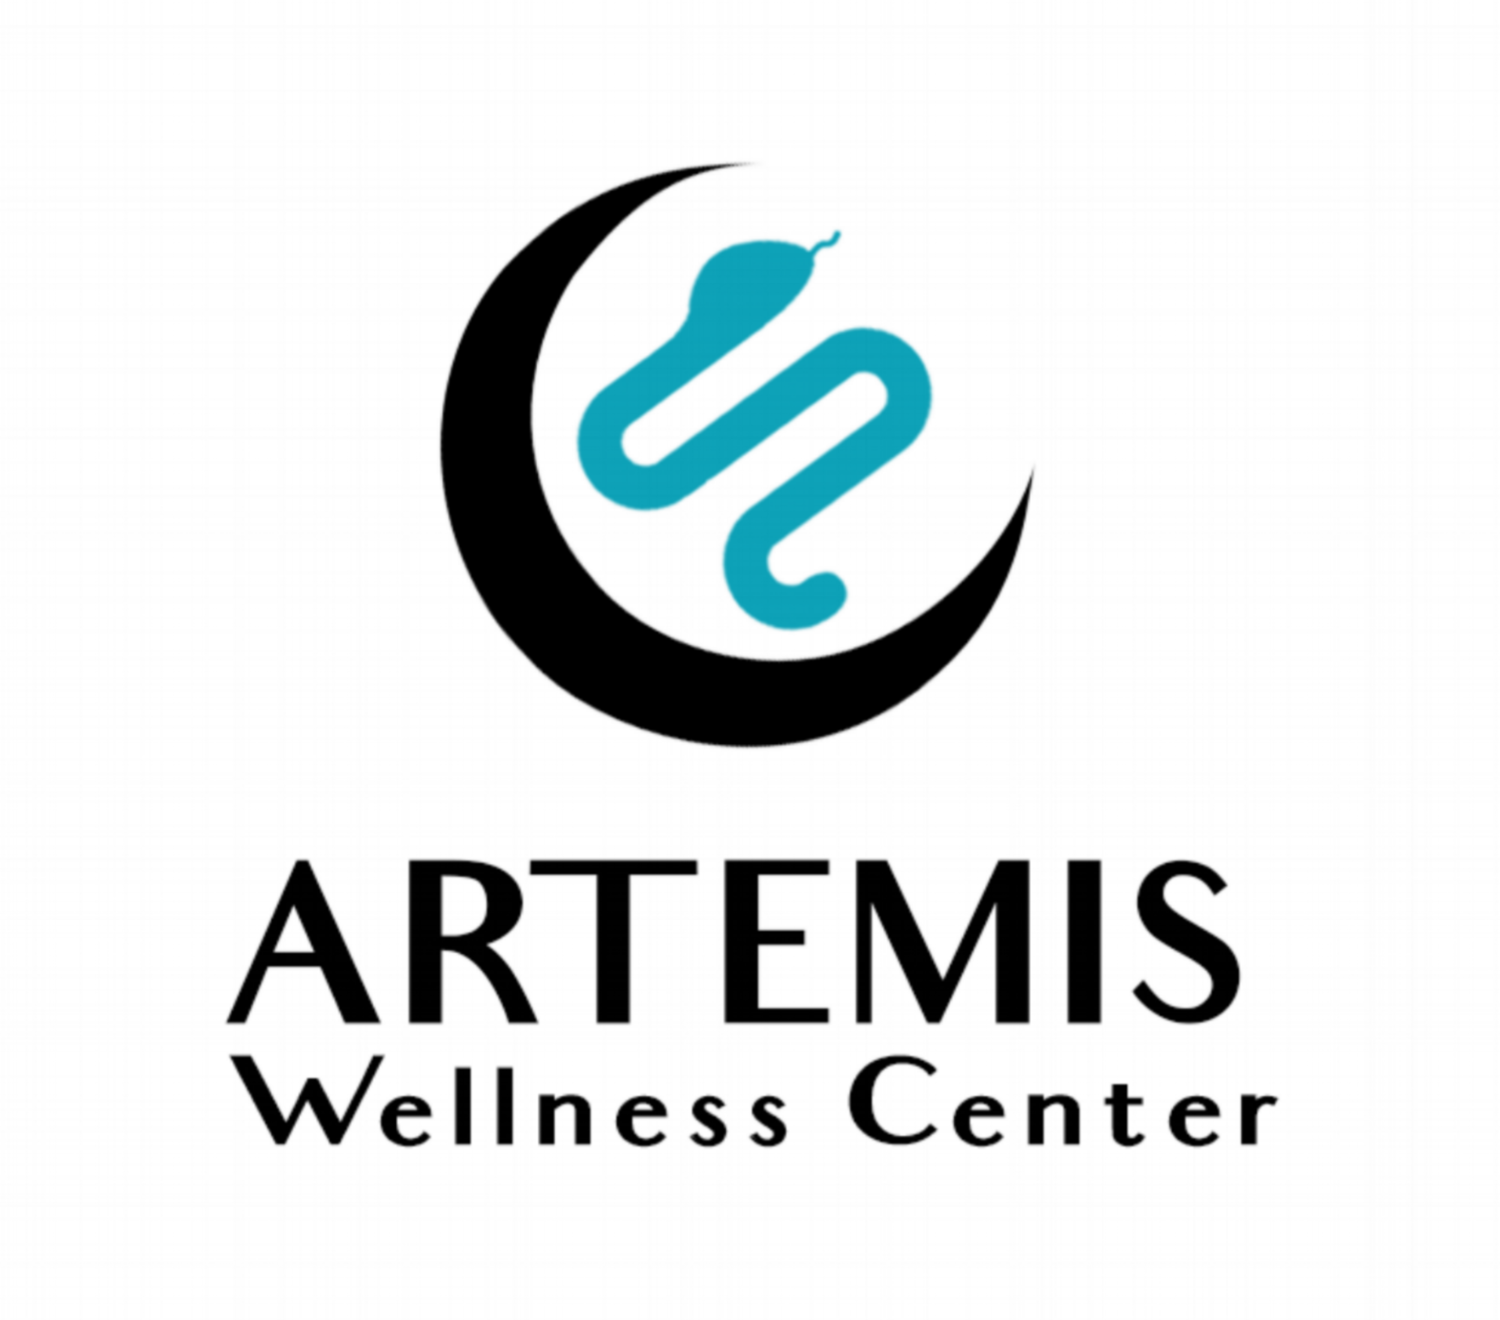 Artemis Wellness Center